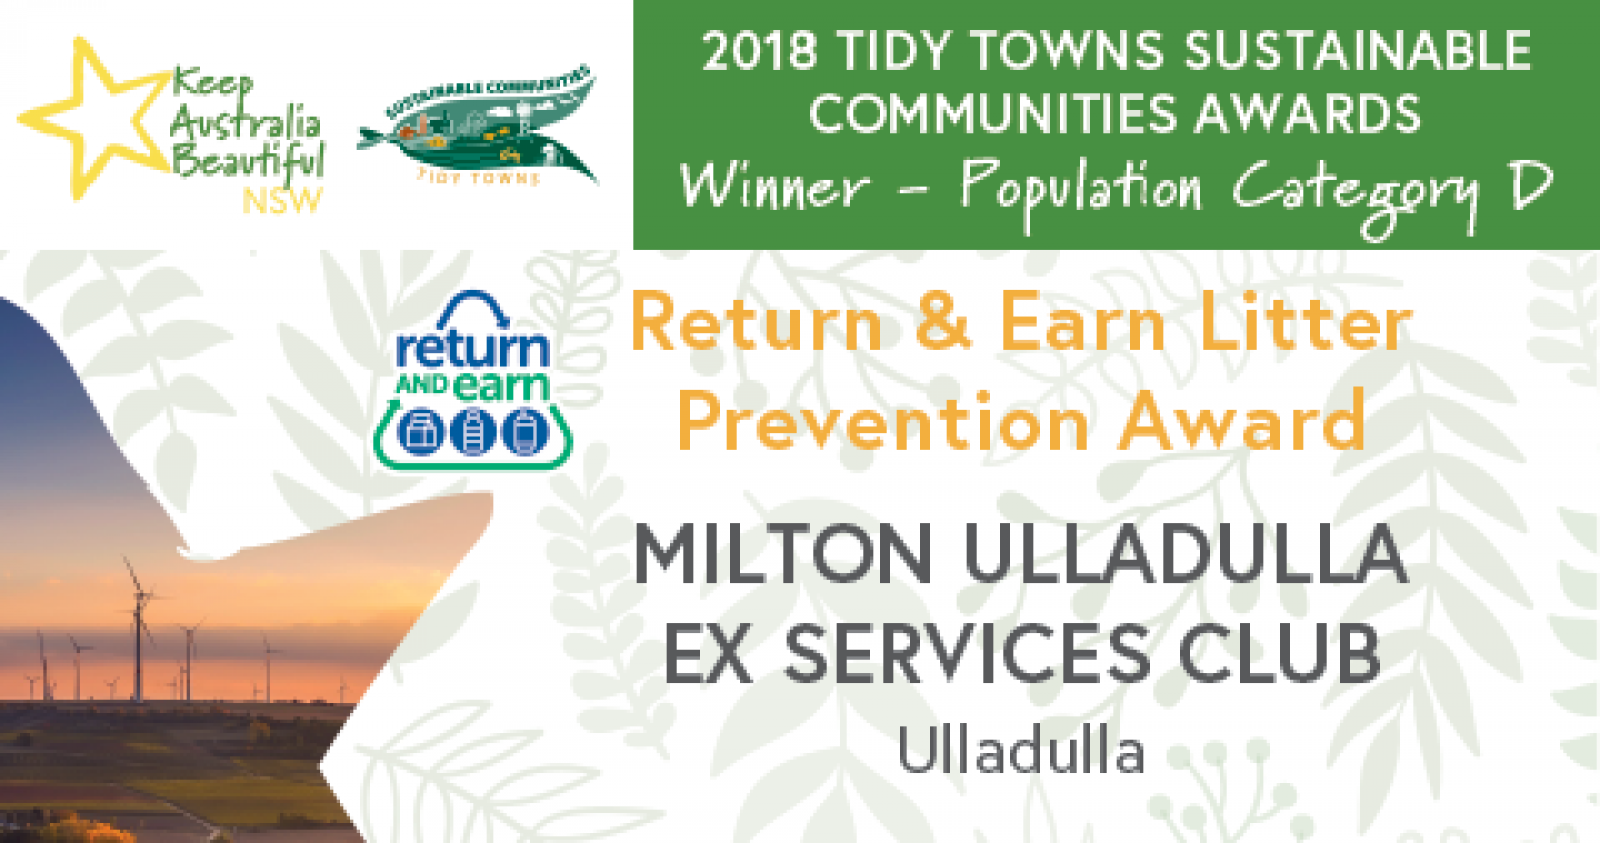 Return and Earn Litter Prevention Award to the ExSeevos